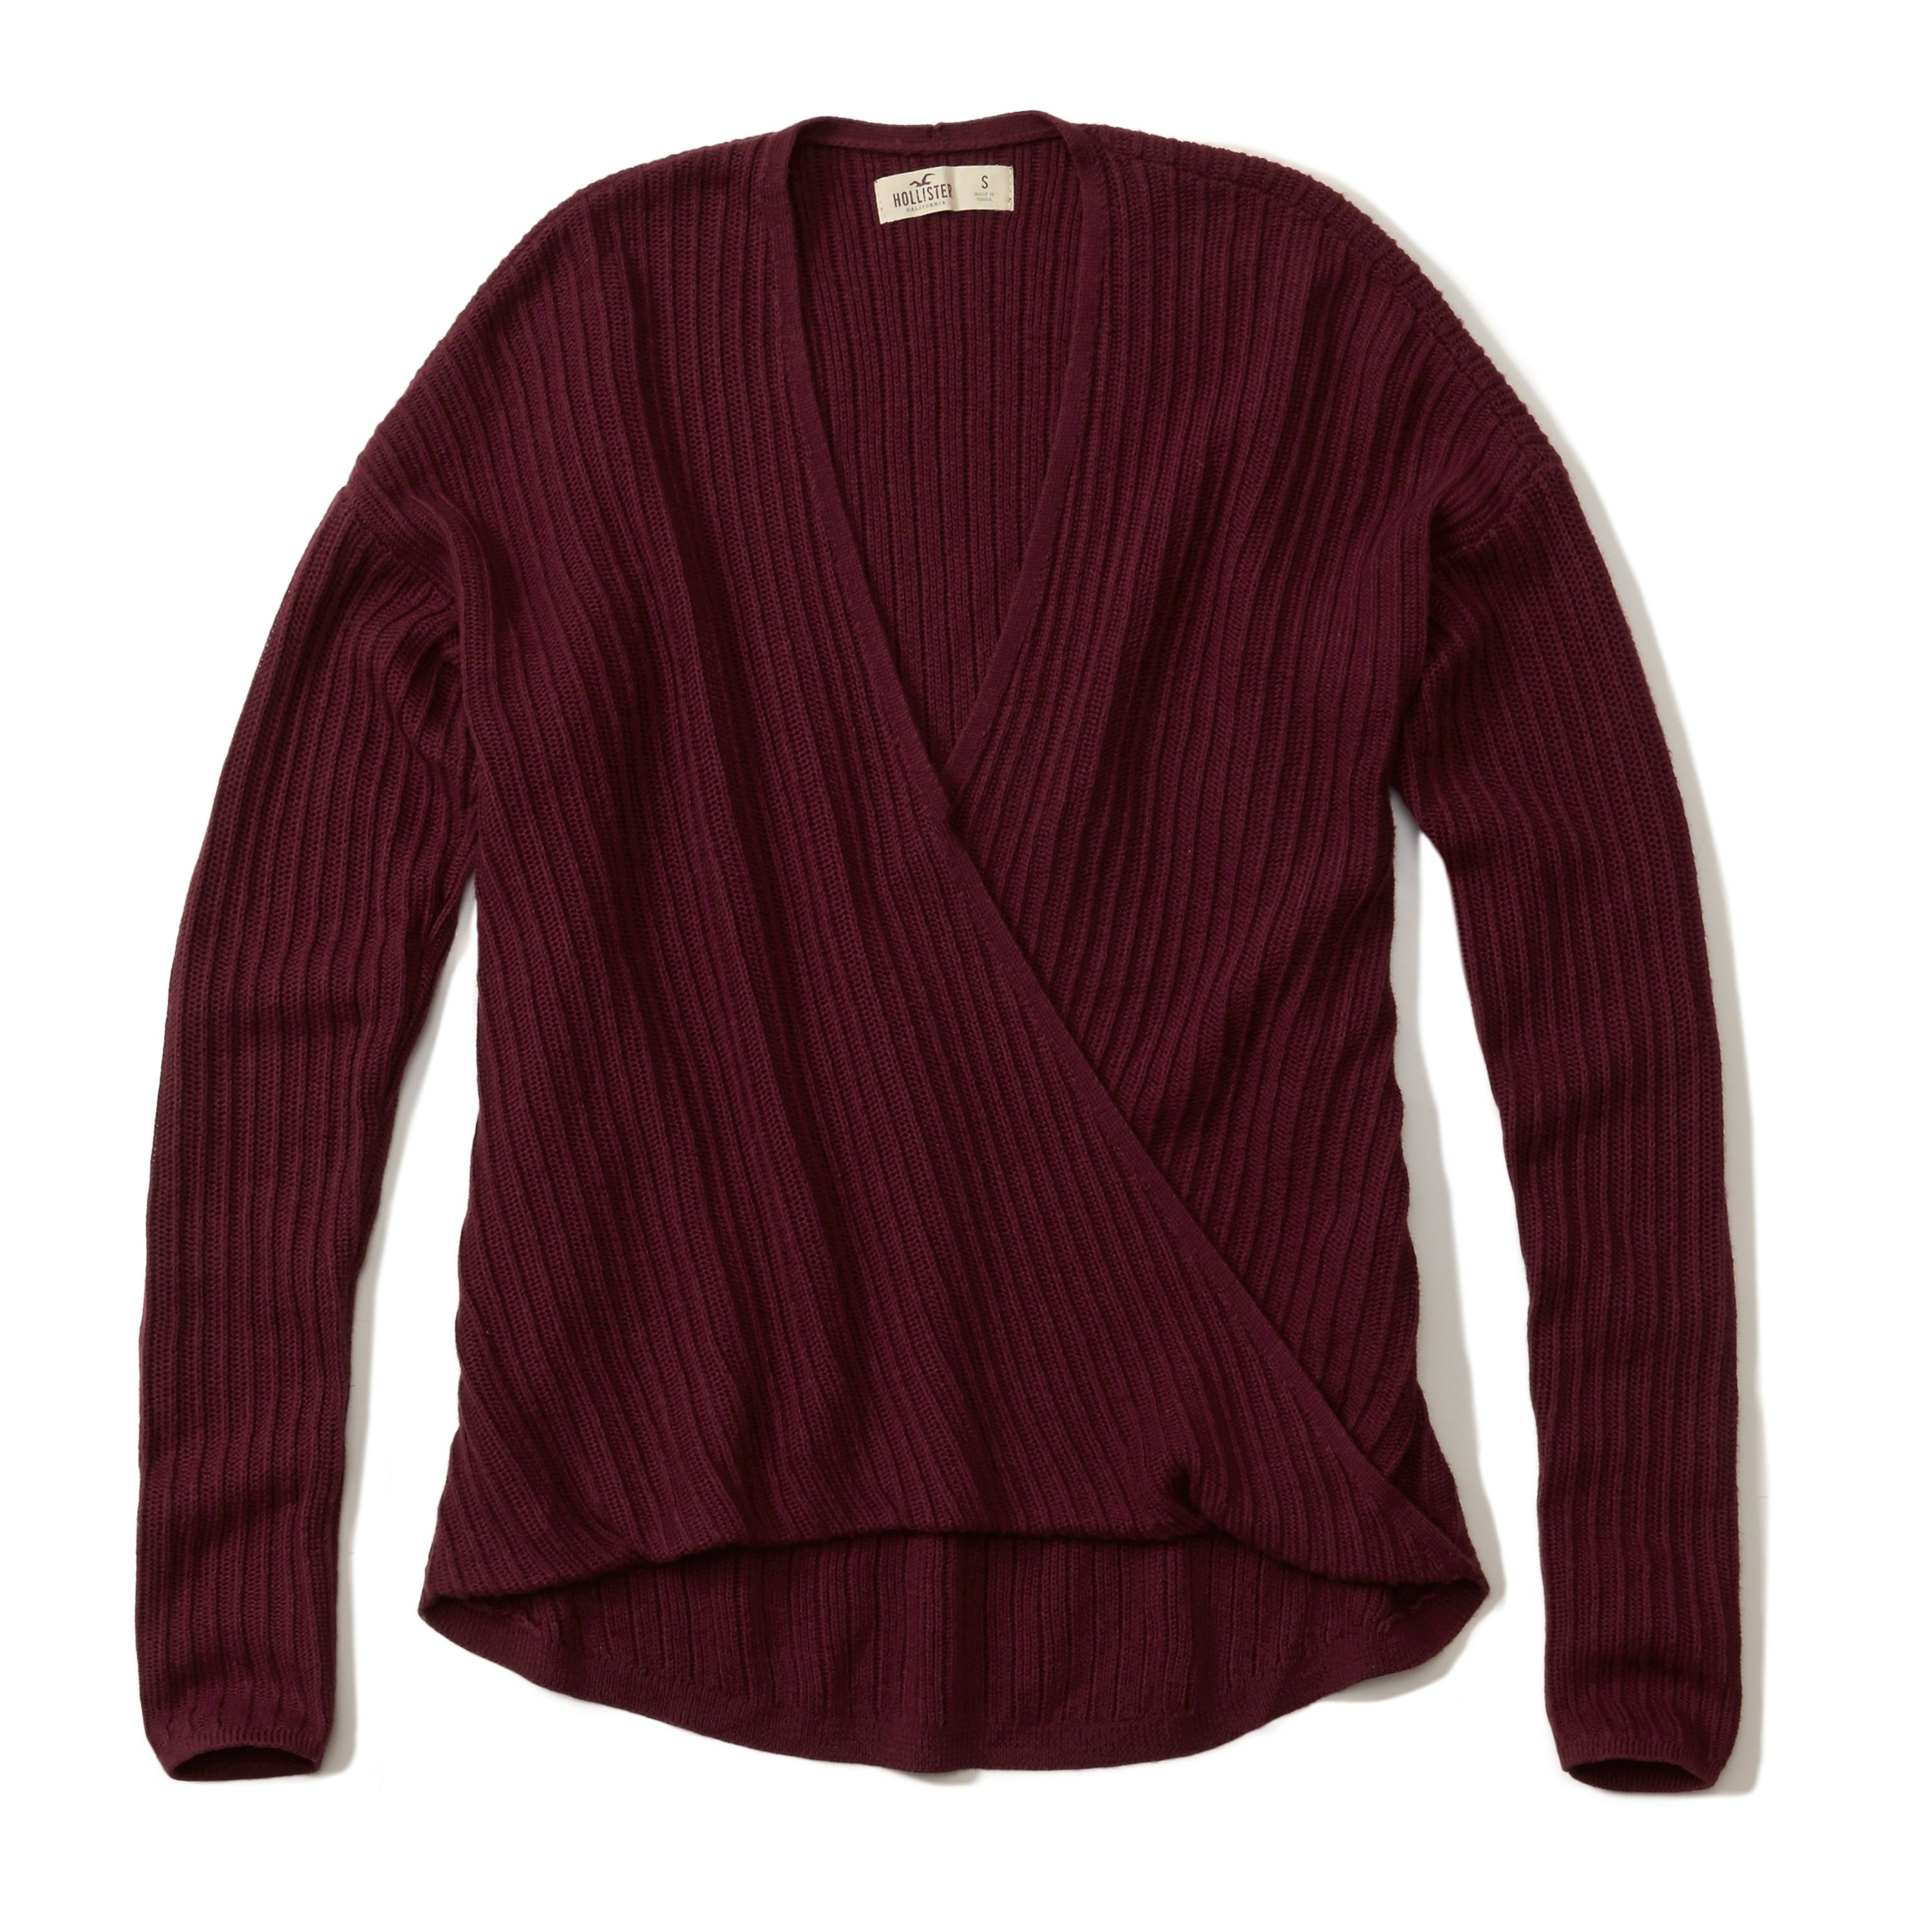 Hollister Oberbekleidung Returns Exchanges Hollister Pullover Hollister Hoodies Hollister Jeans: Hollister Wrap Front Ribbed Sweater In Purple